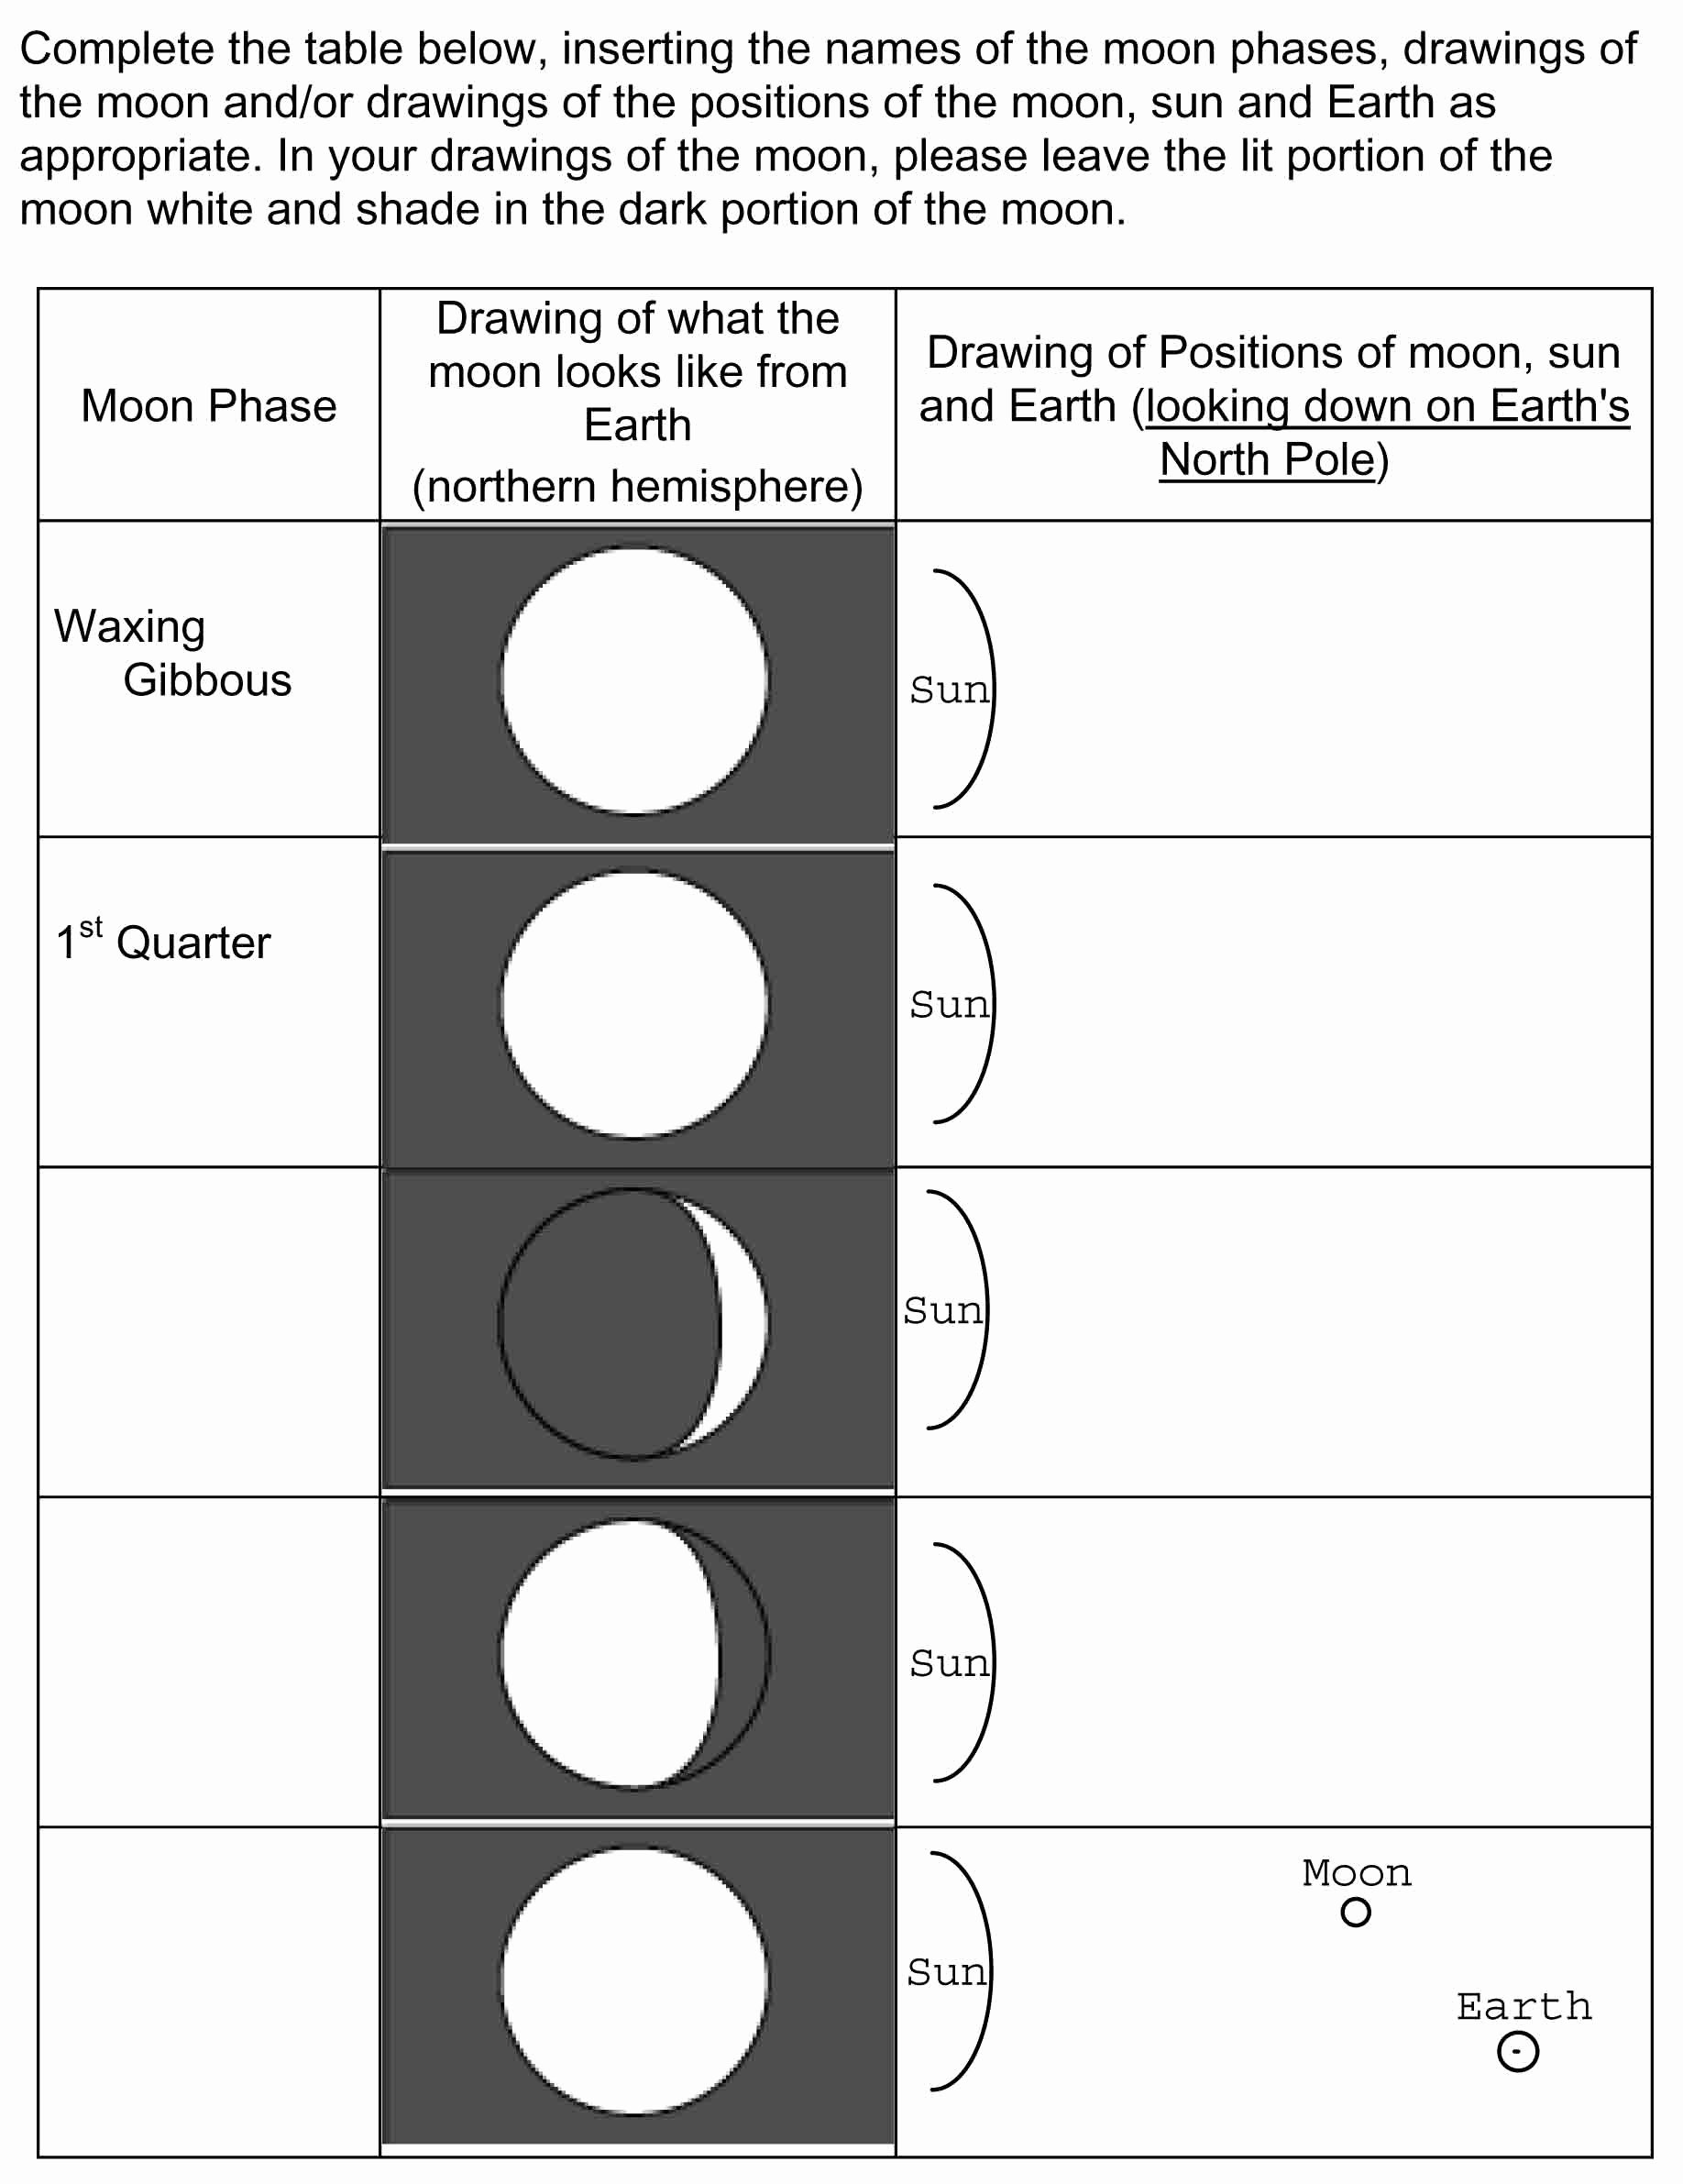 Moon Phases Worksheet Answers Inspirational Phases and Eclipses Of the Moon